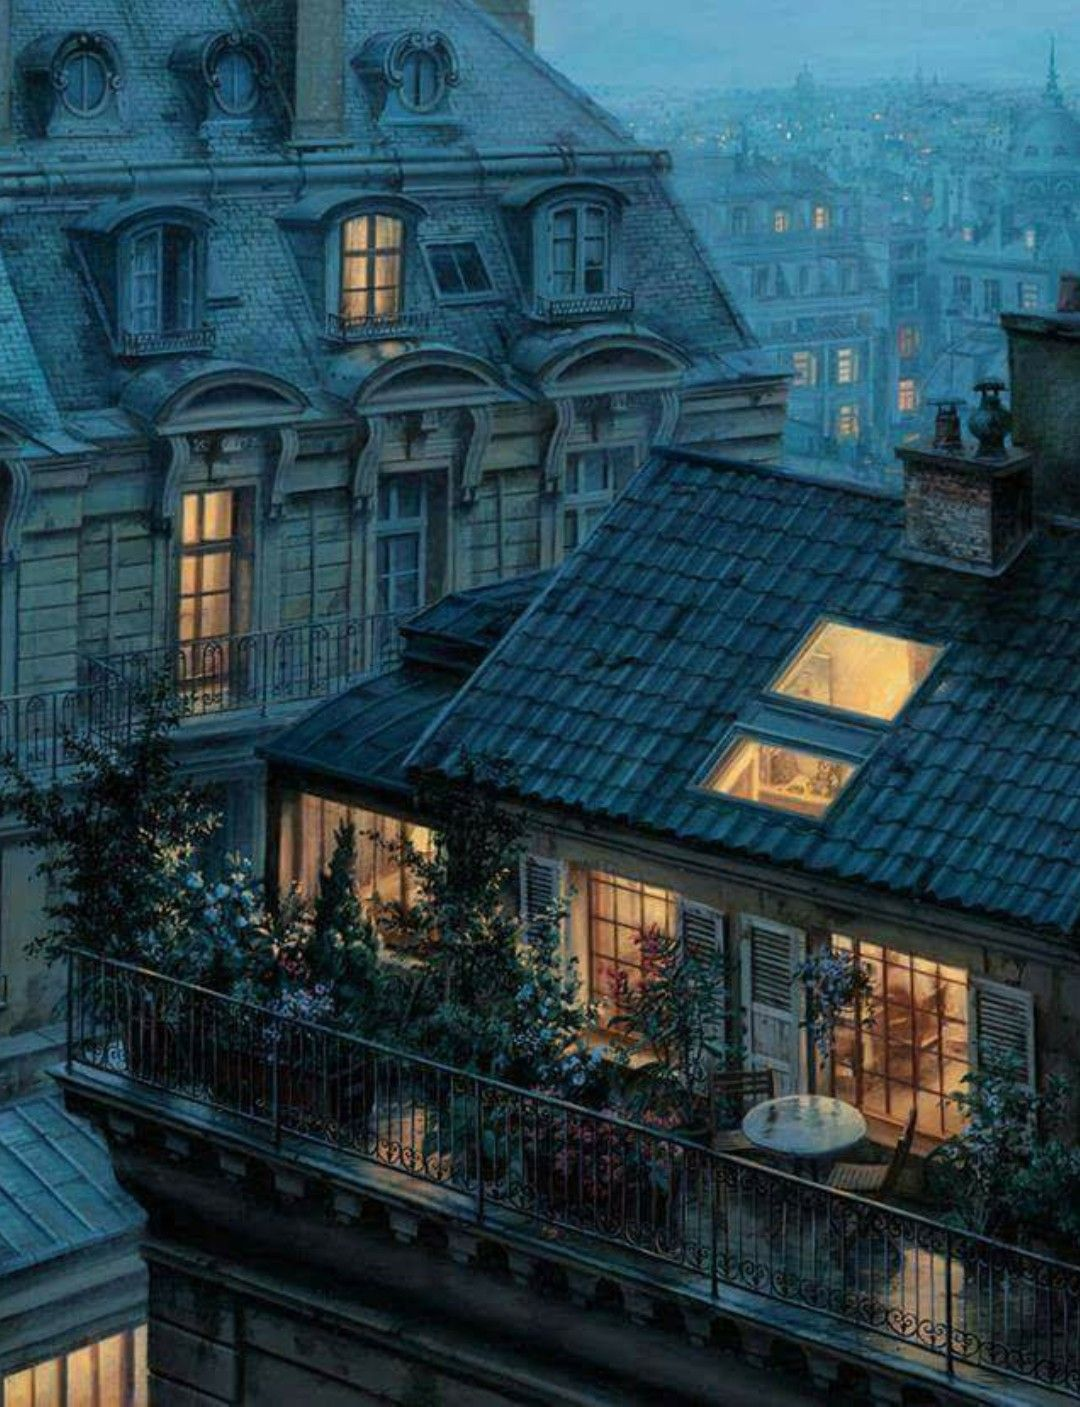 Cash Pool Frankreich Eugene Lushpin Home Furniture Architektur Frankreich Paris